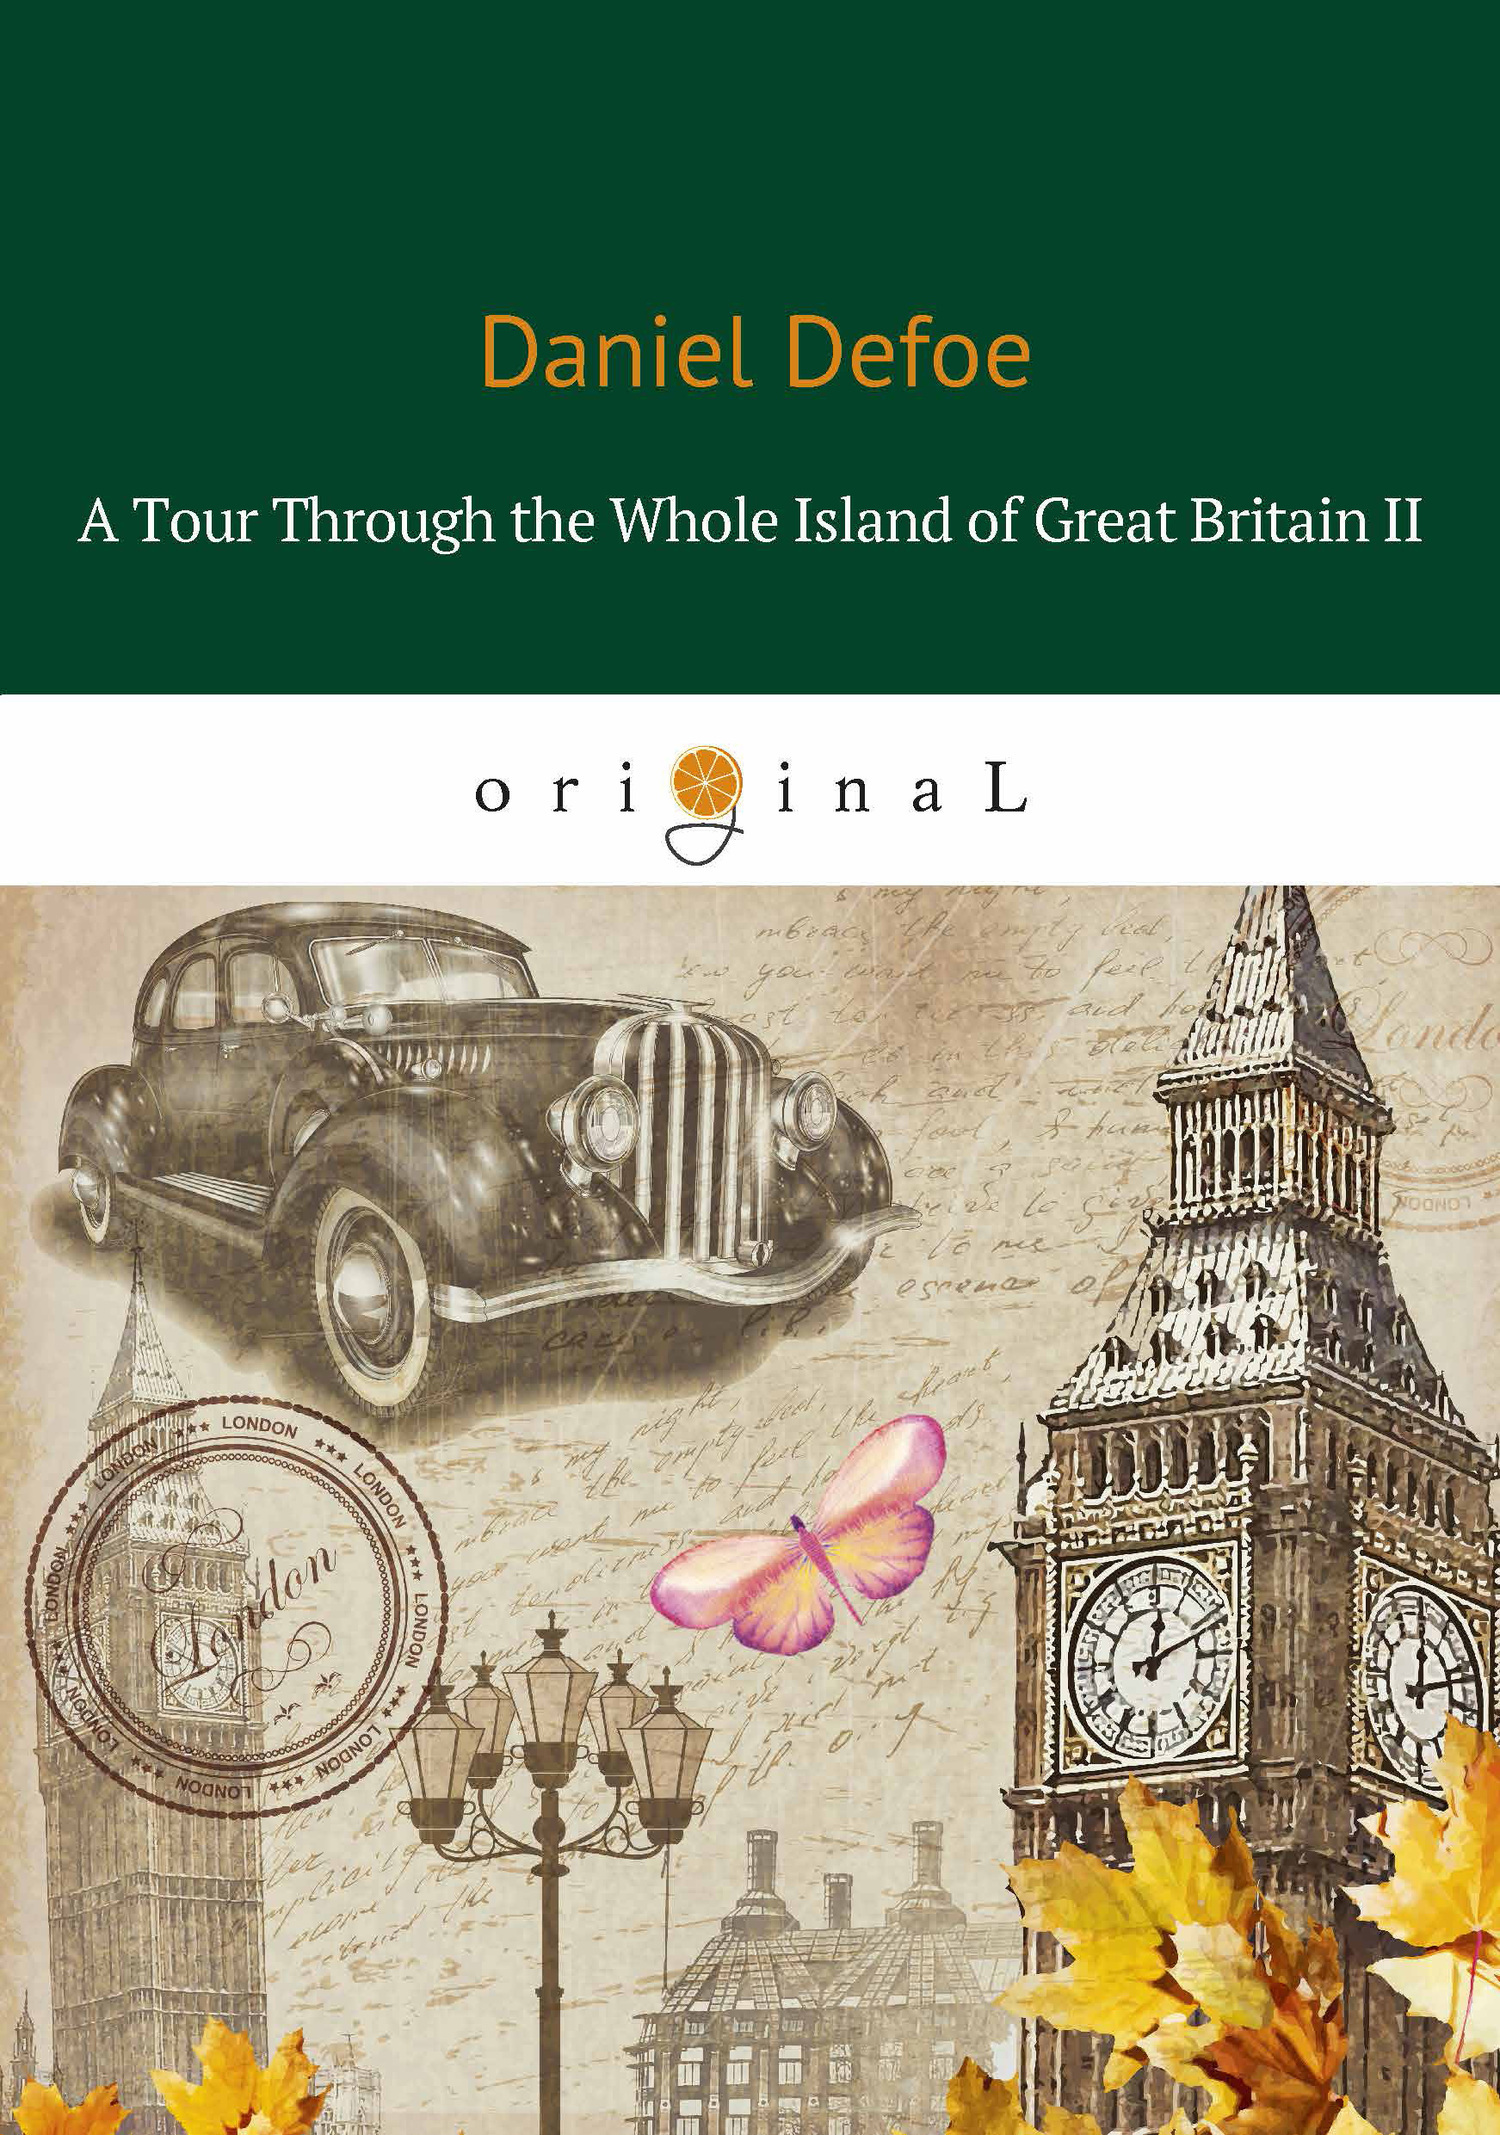 Даниэль Дефо A Tour Through the Whole Island of Great Britain II doug lemov the writing revolution a guide to advancing thinking through writing in all subjects and grades isbn 9781119364948